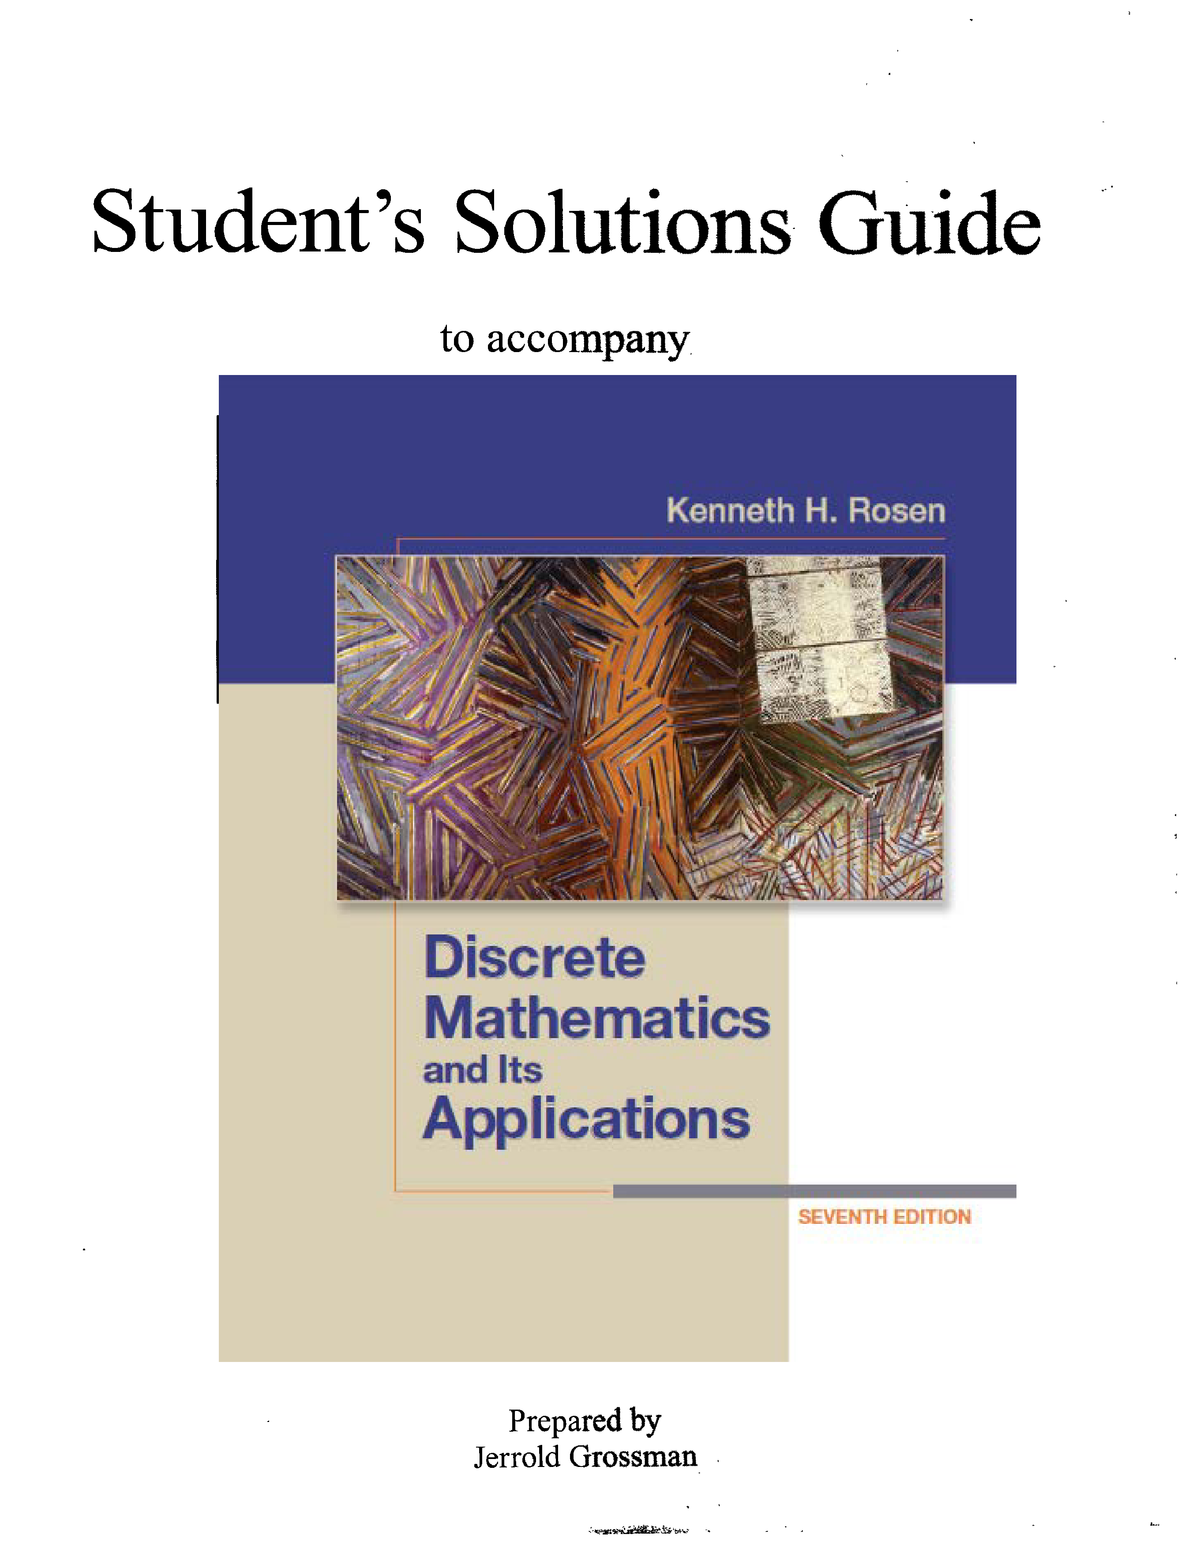 Solution discrete mathematics and its applications 7th